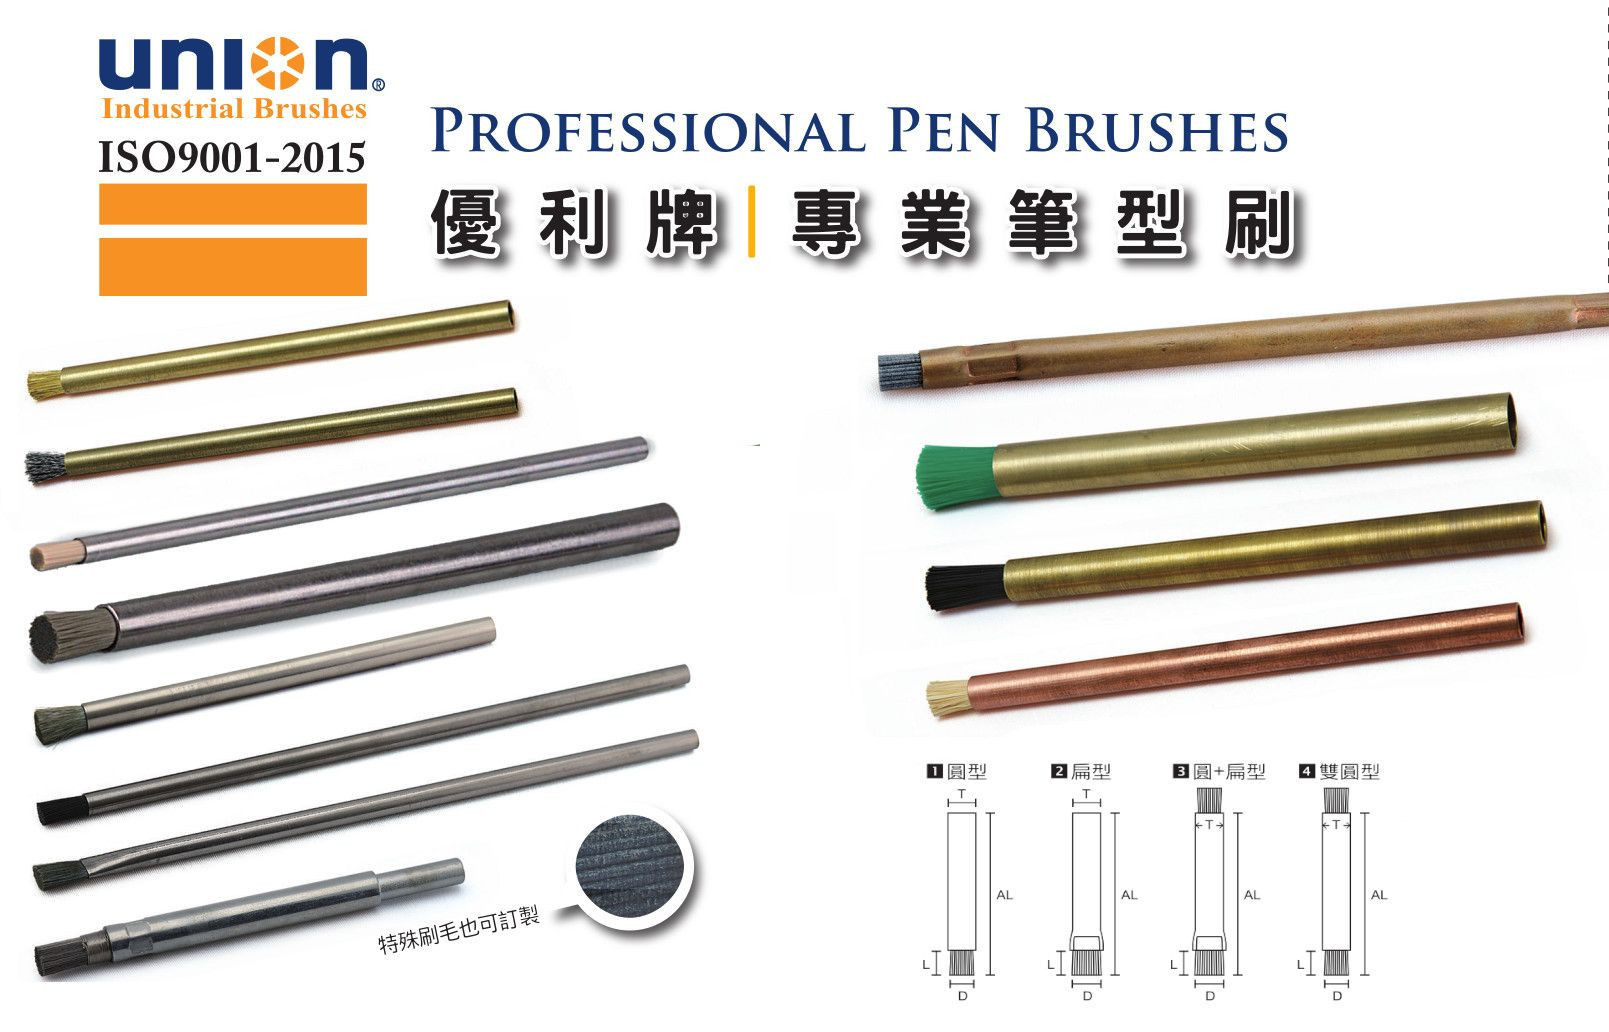 Professional Pen Brushes professional pen brushes Ideal for the removal of most materials. Pro Brushes For Professional Choice. All Professional Brushes Are Available For CUSTOM-MADE